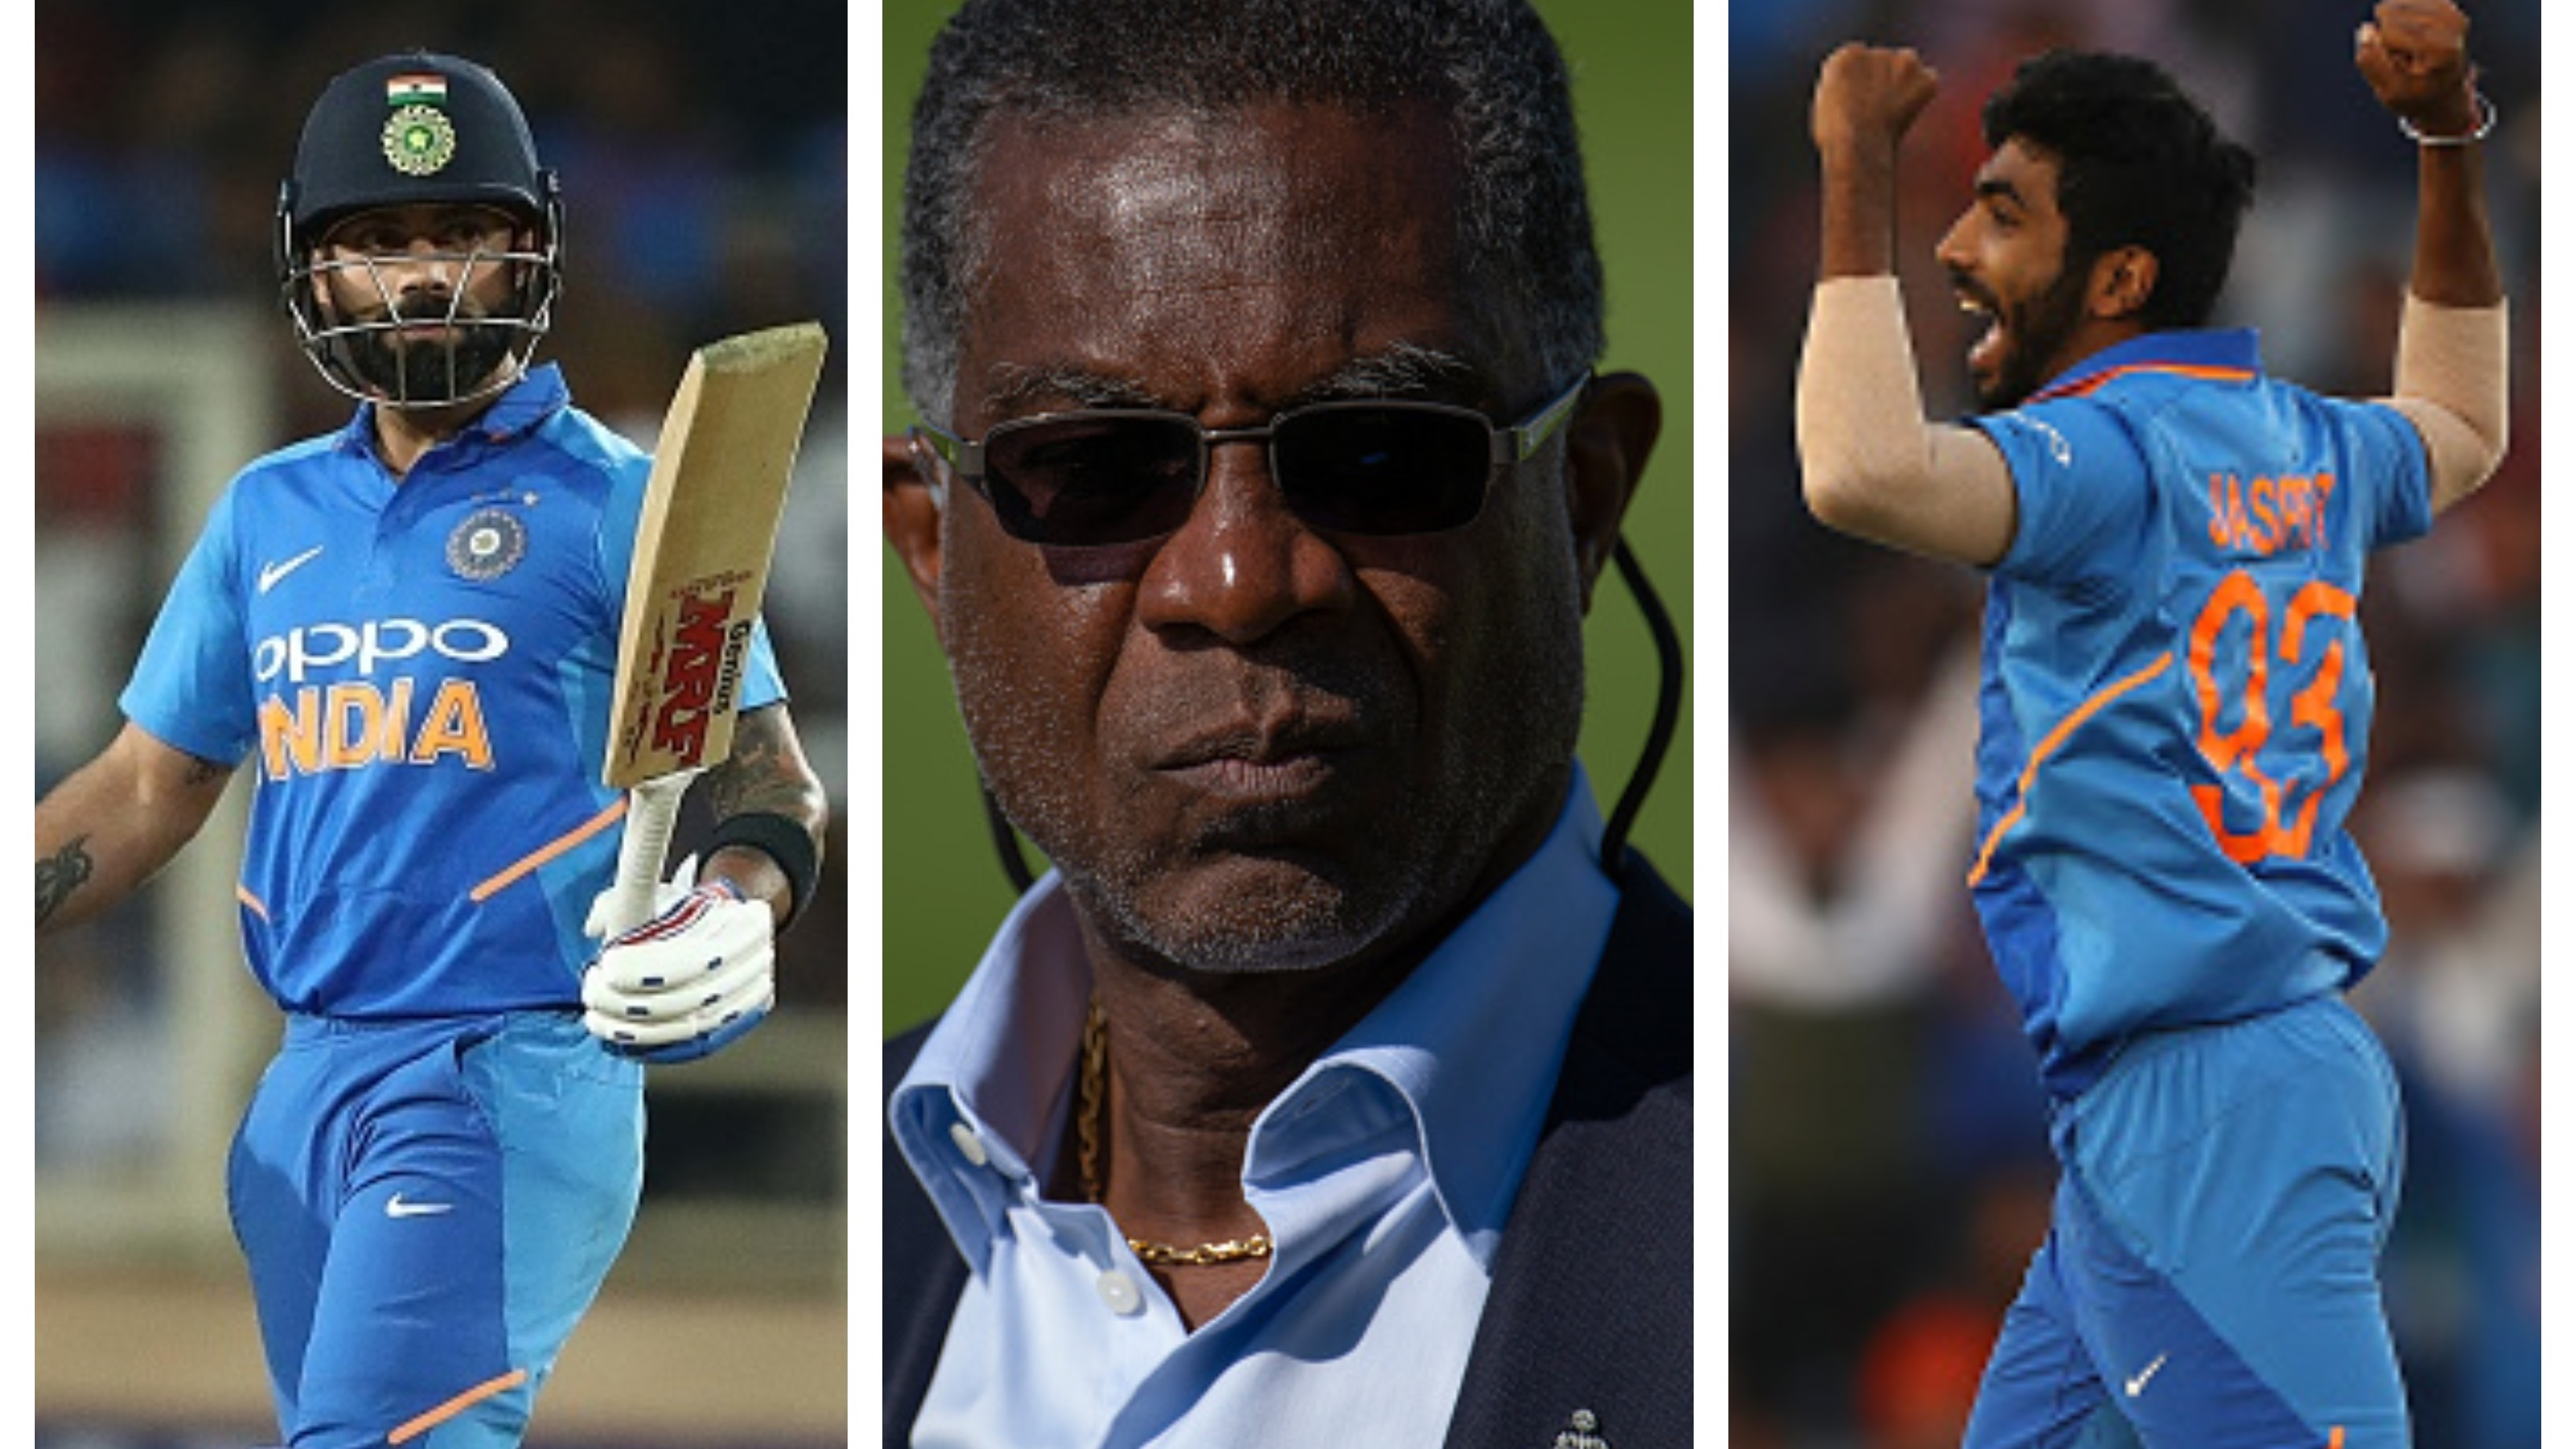 CWC 2019: Kohli and Bumrah will be x-factors for India at the World Cup, says Michael Holding